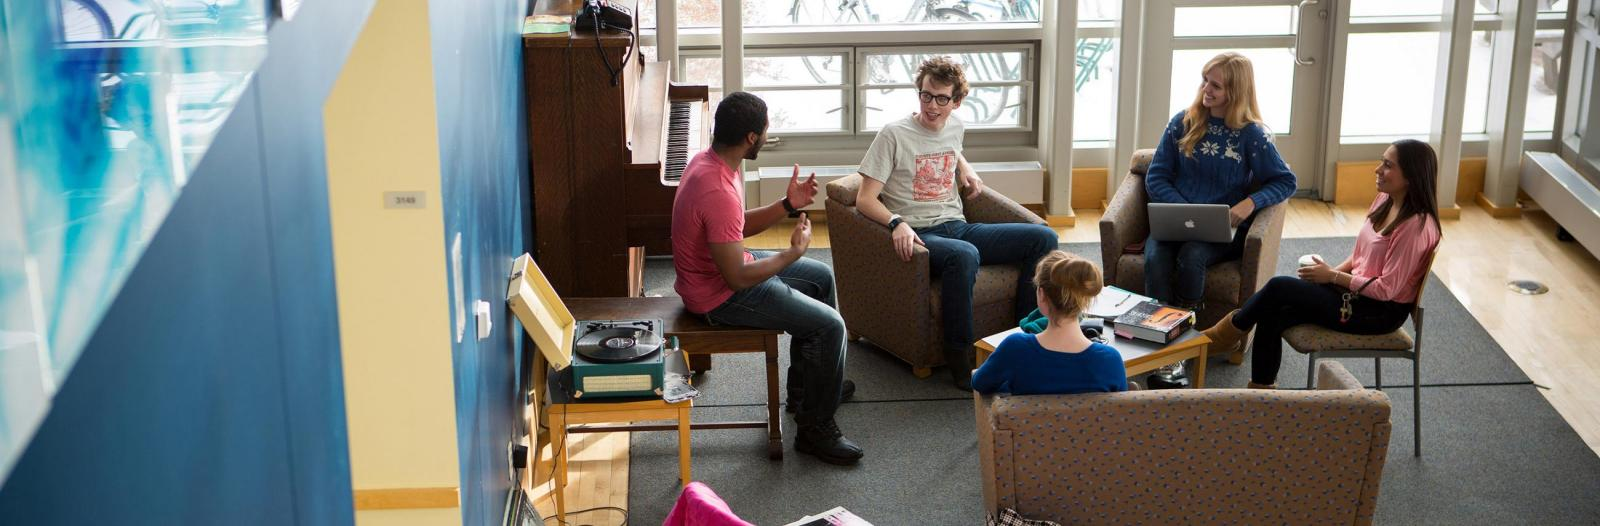 Students sit in chairs in an East Campus dorm foyer